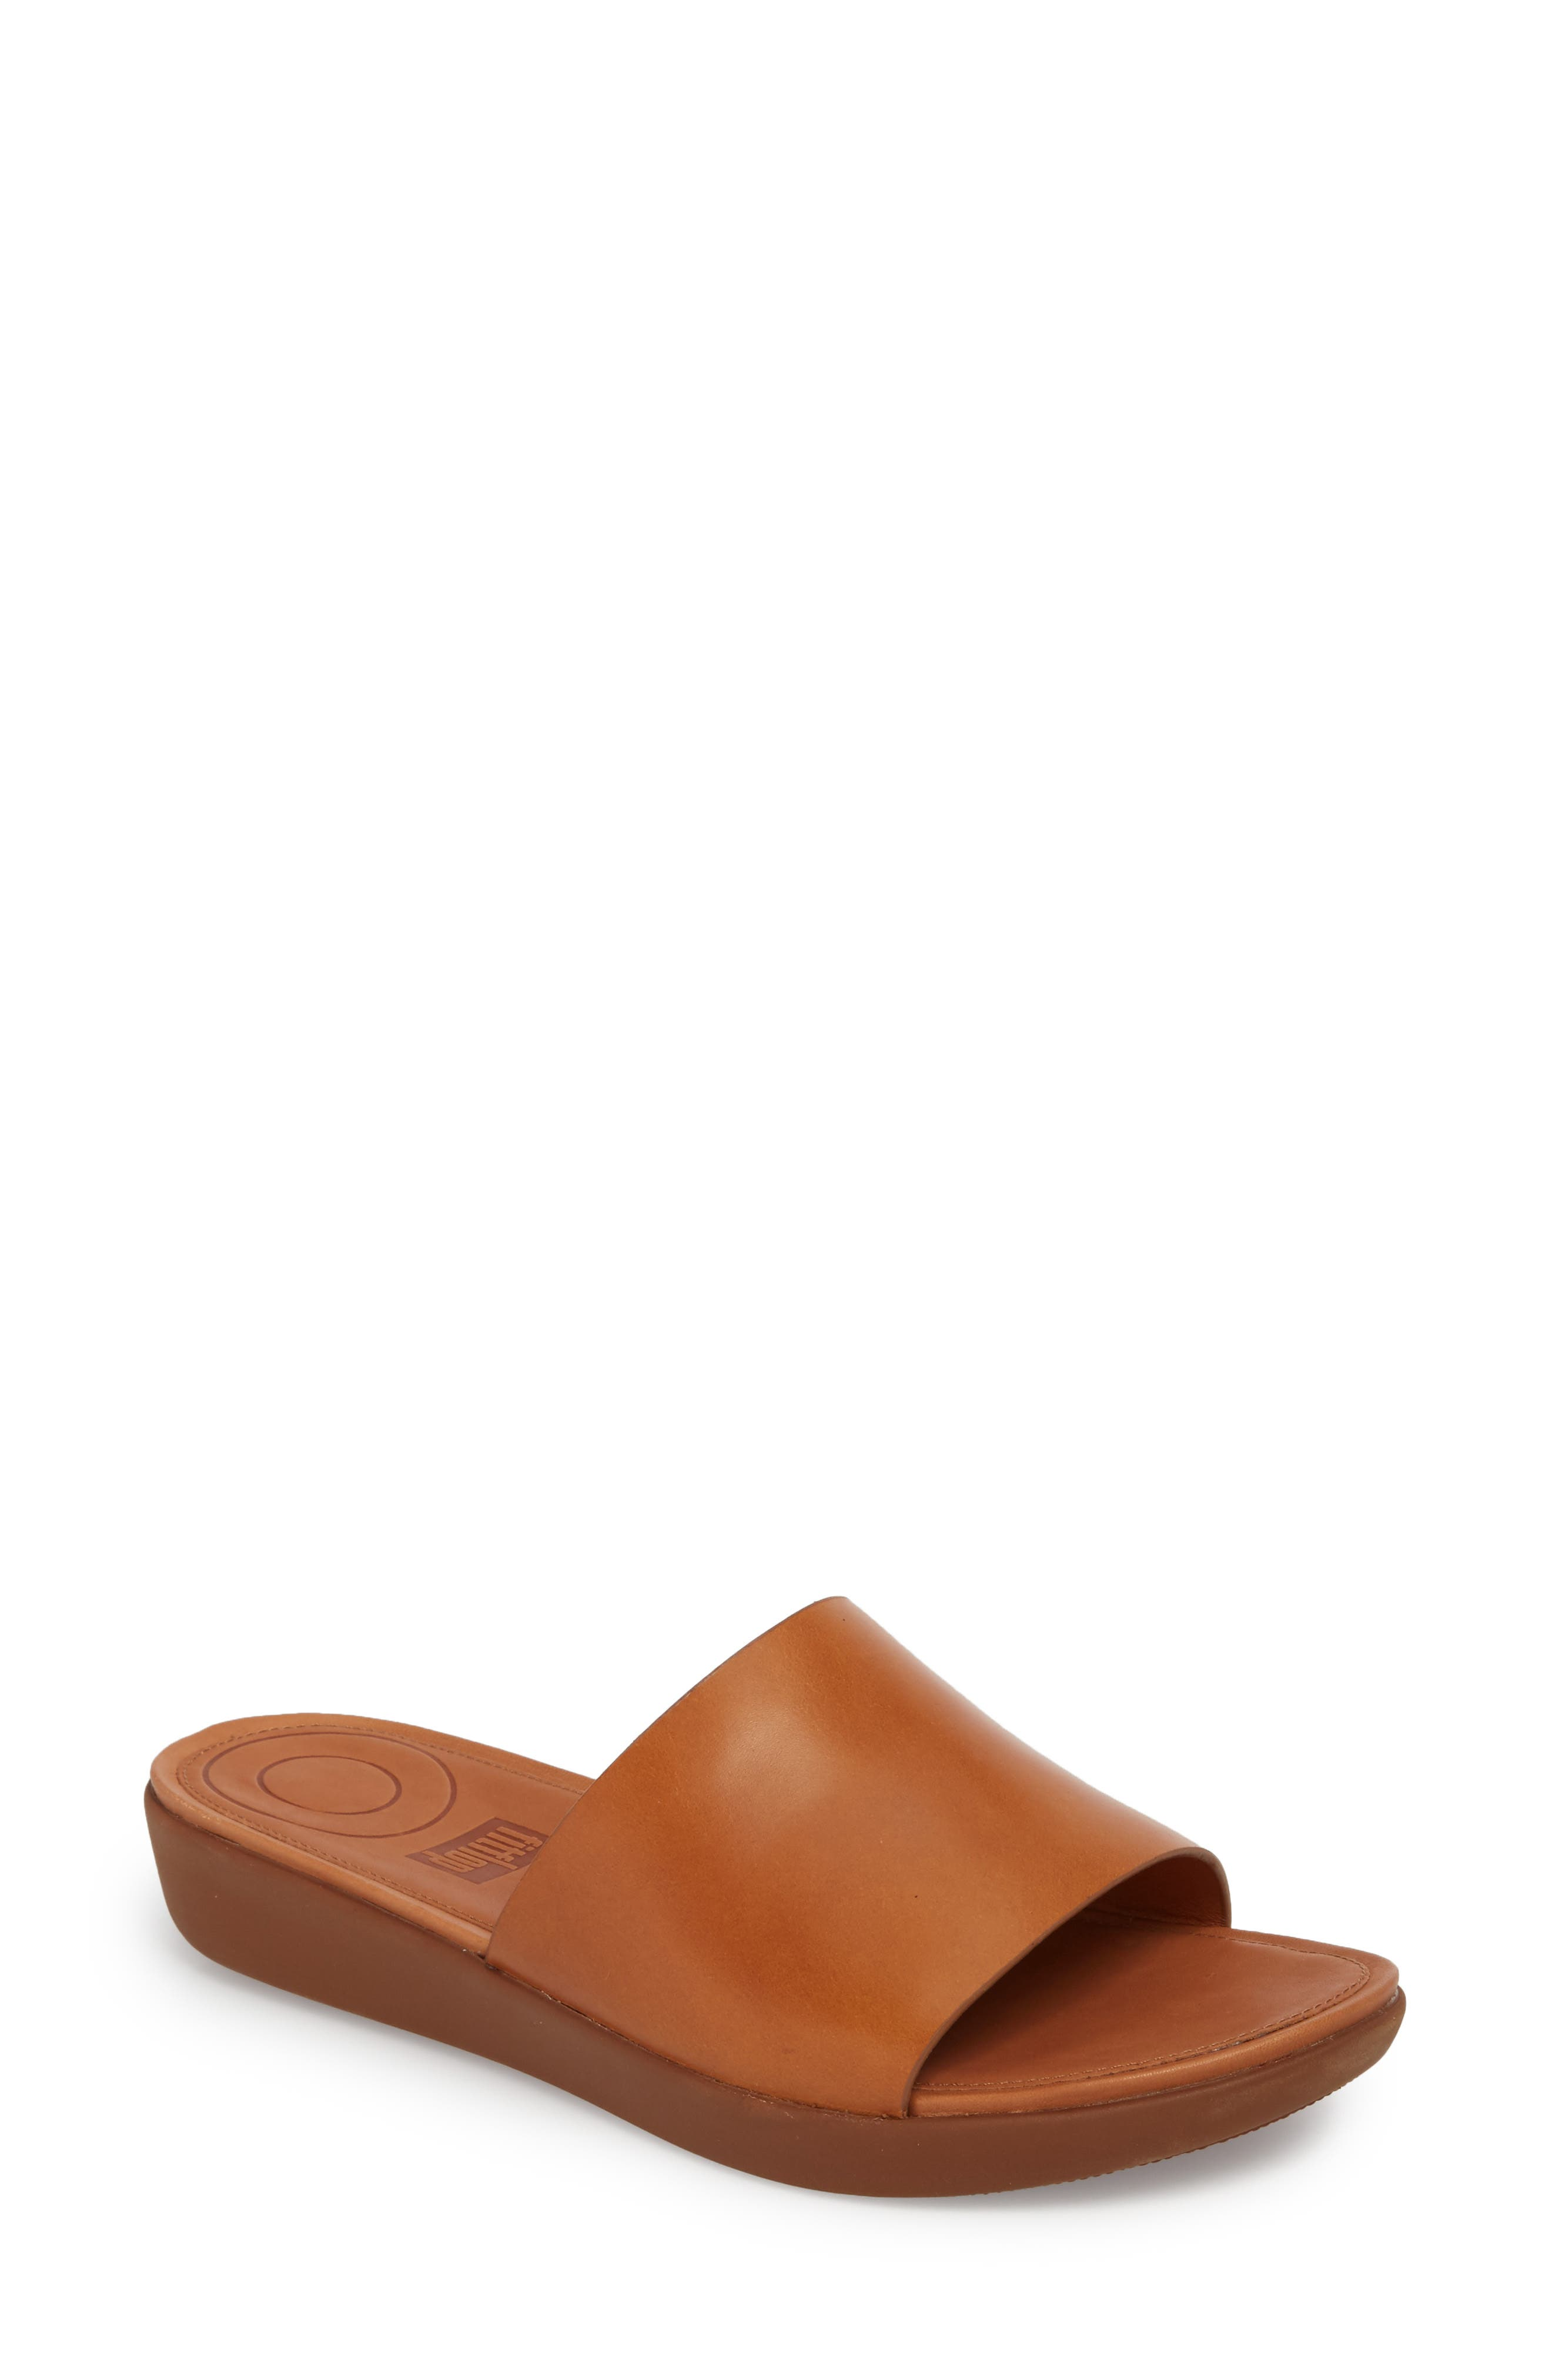 Fitflop Sola Sandal, Brown